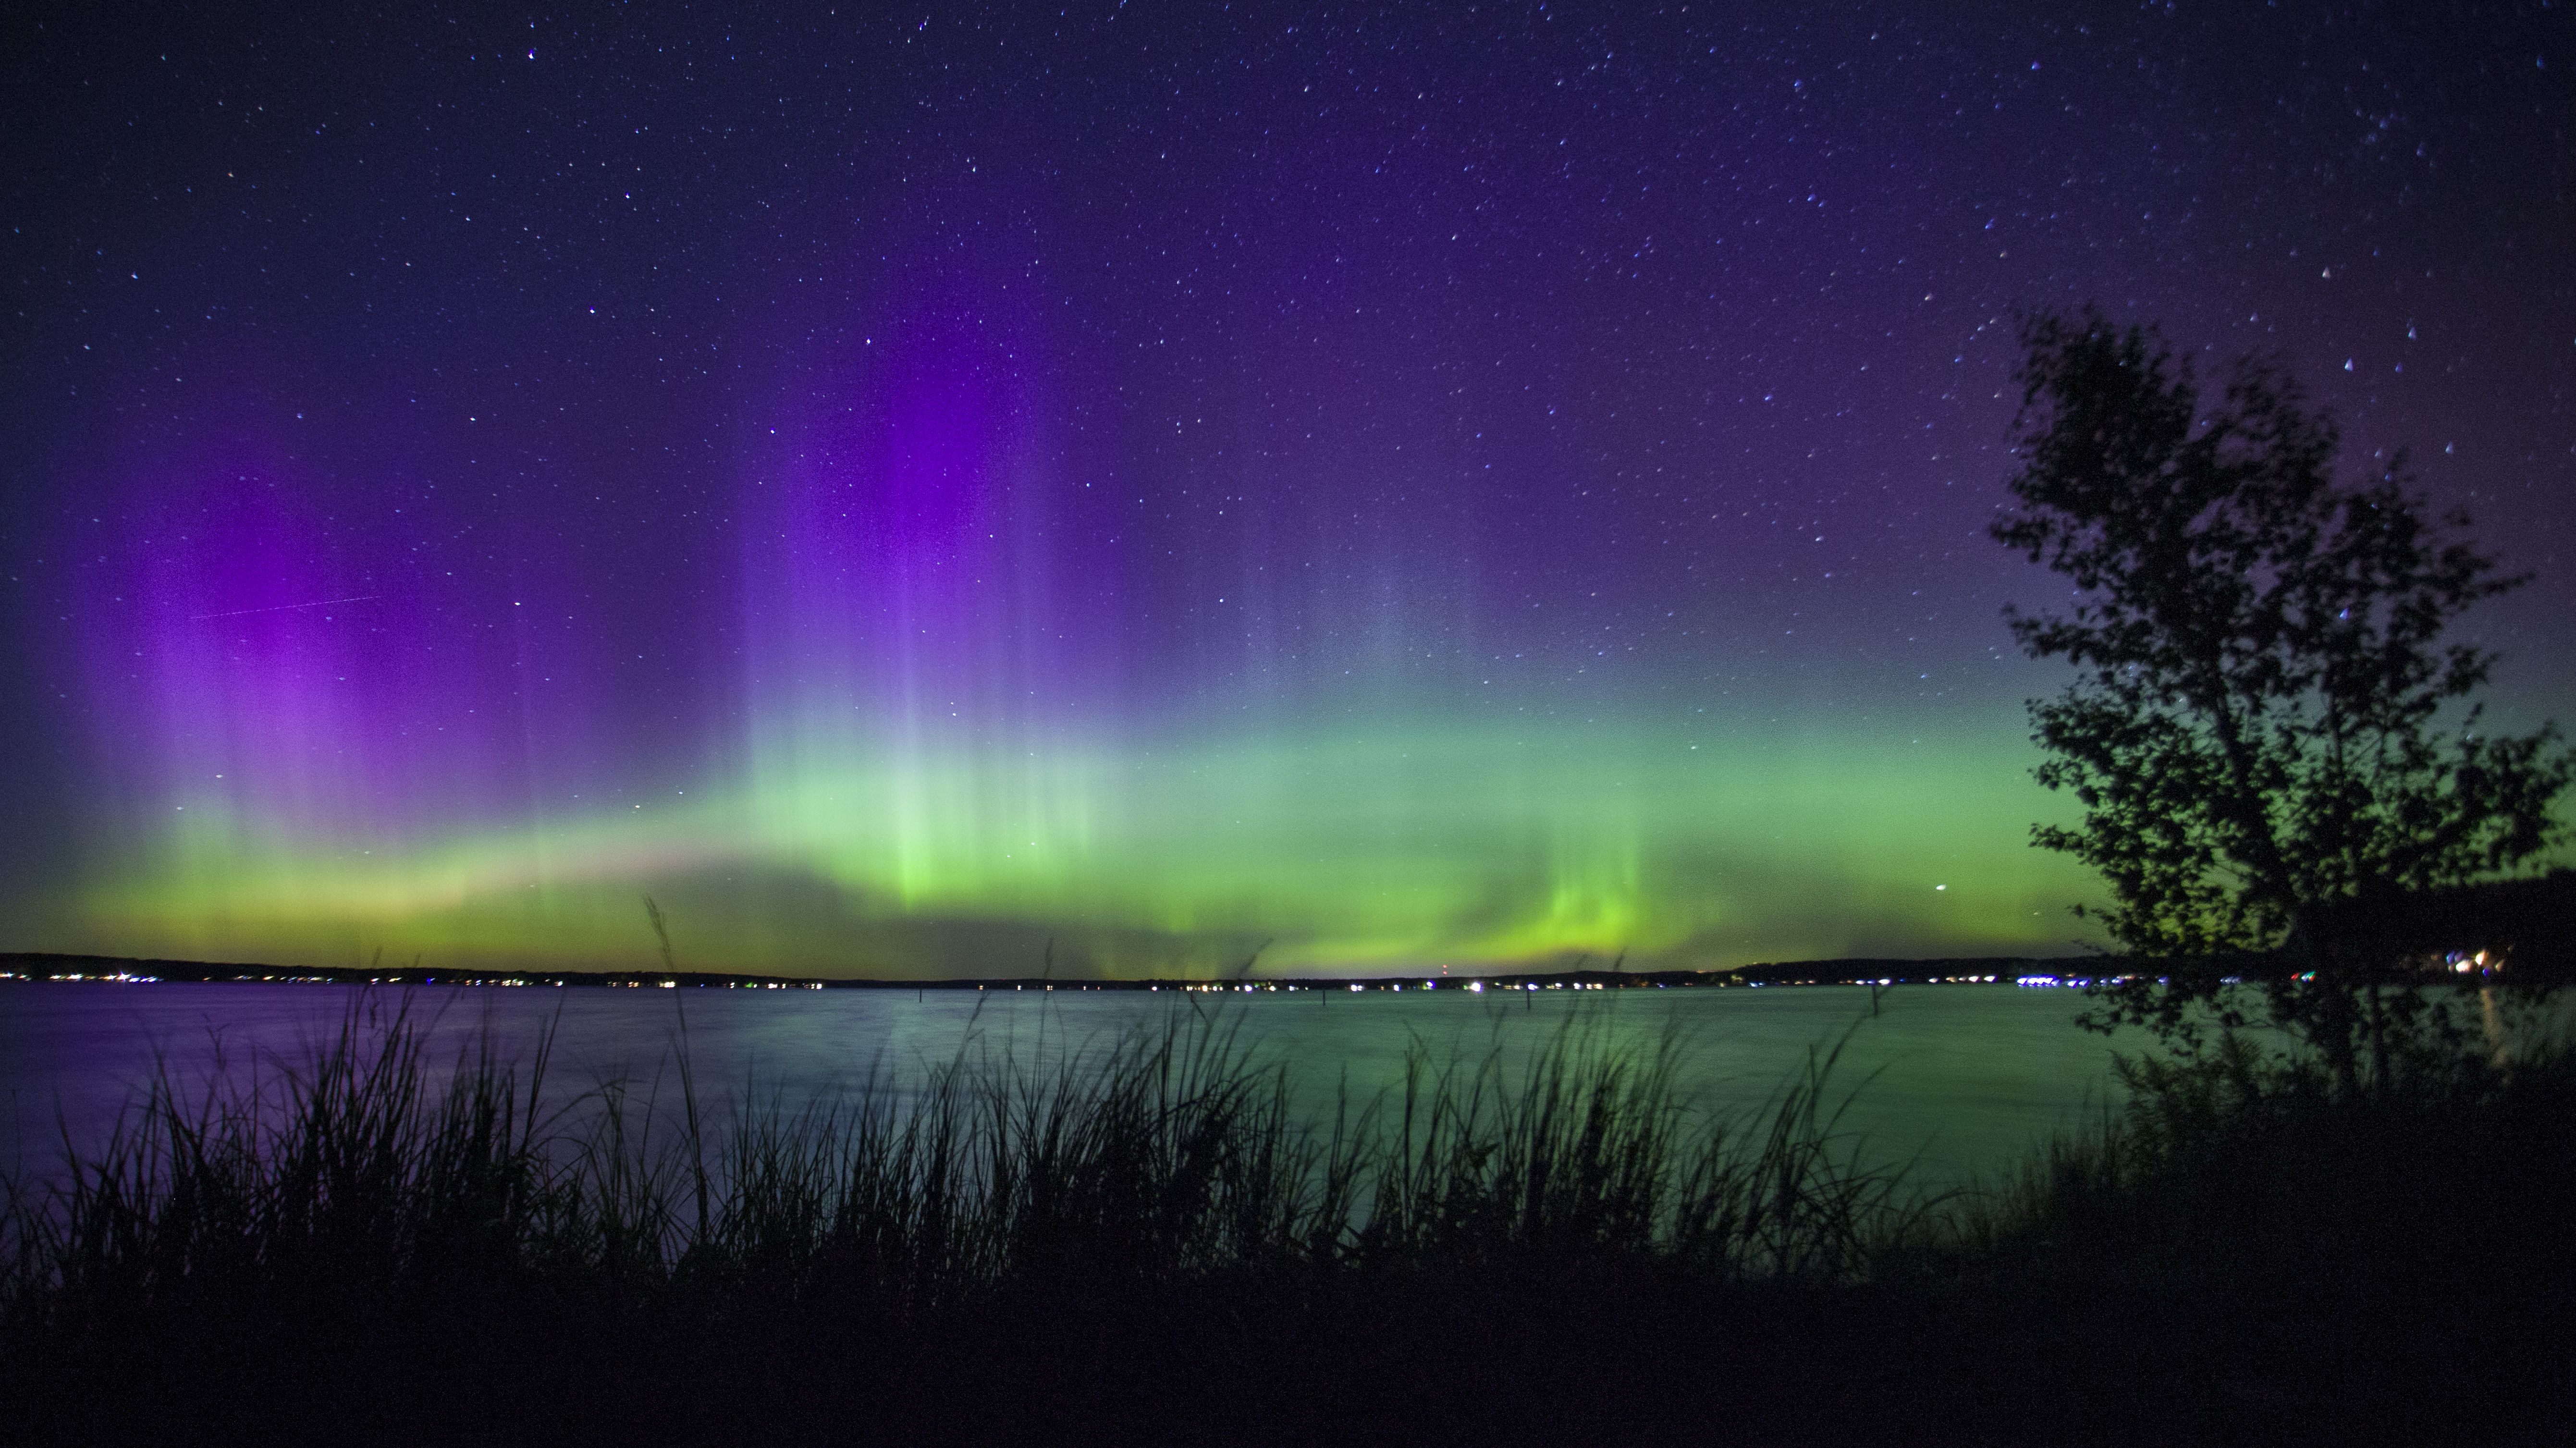 Northern Lights Could Be Visible Over Parts of America This